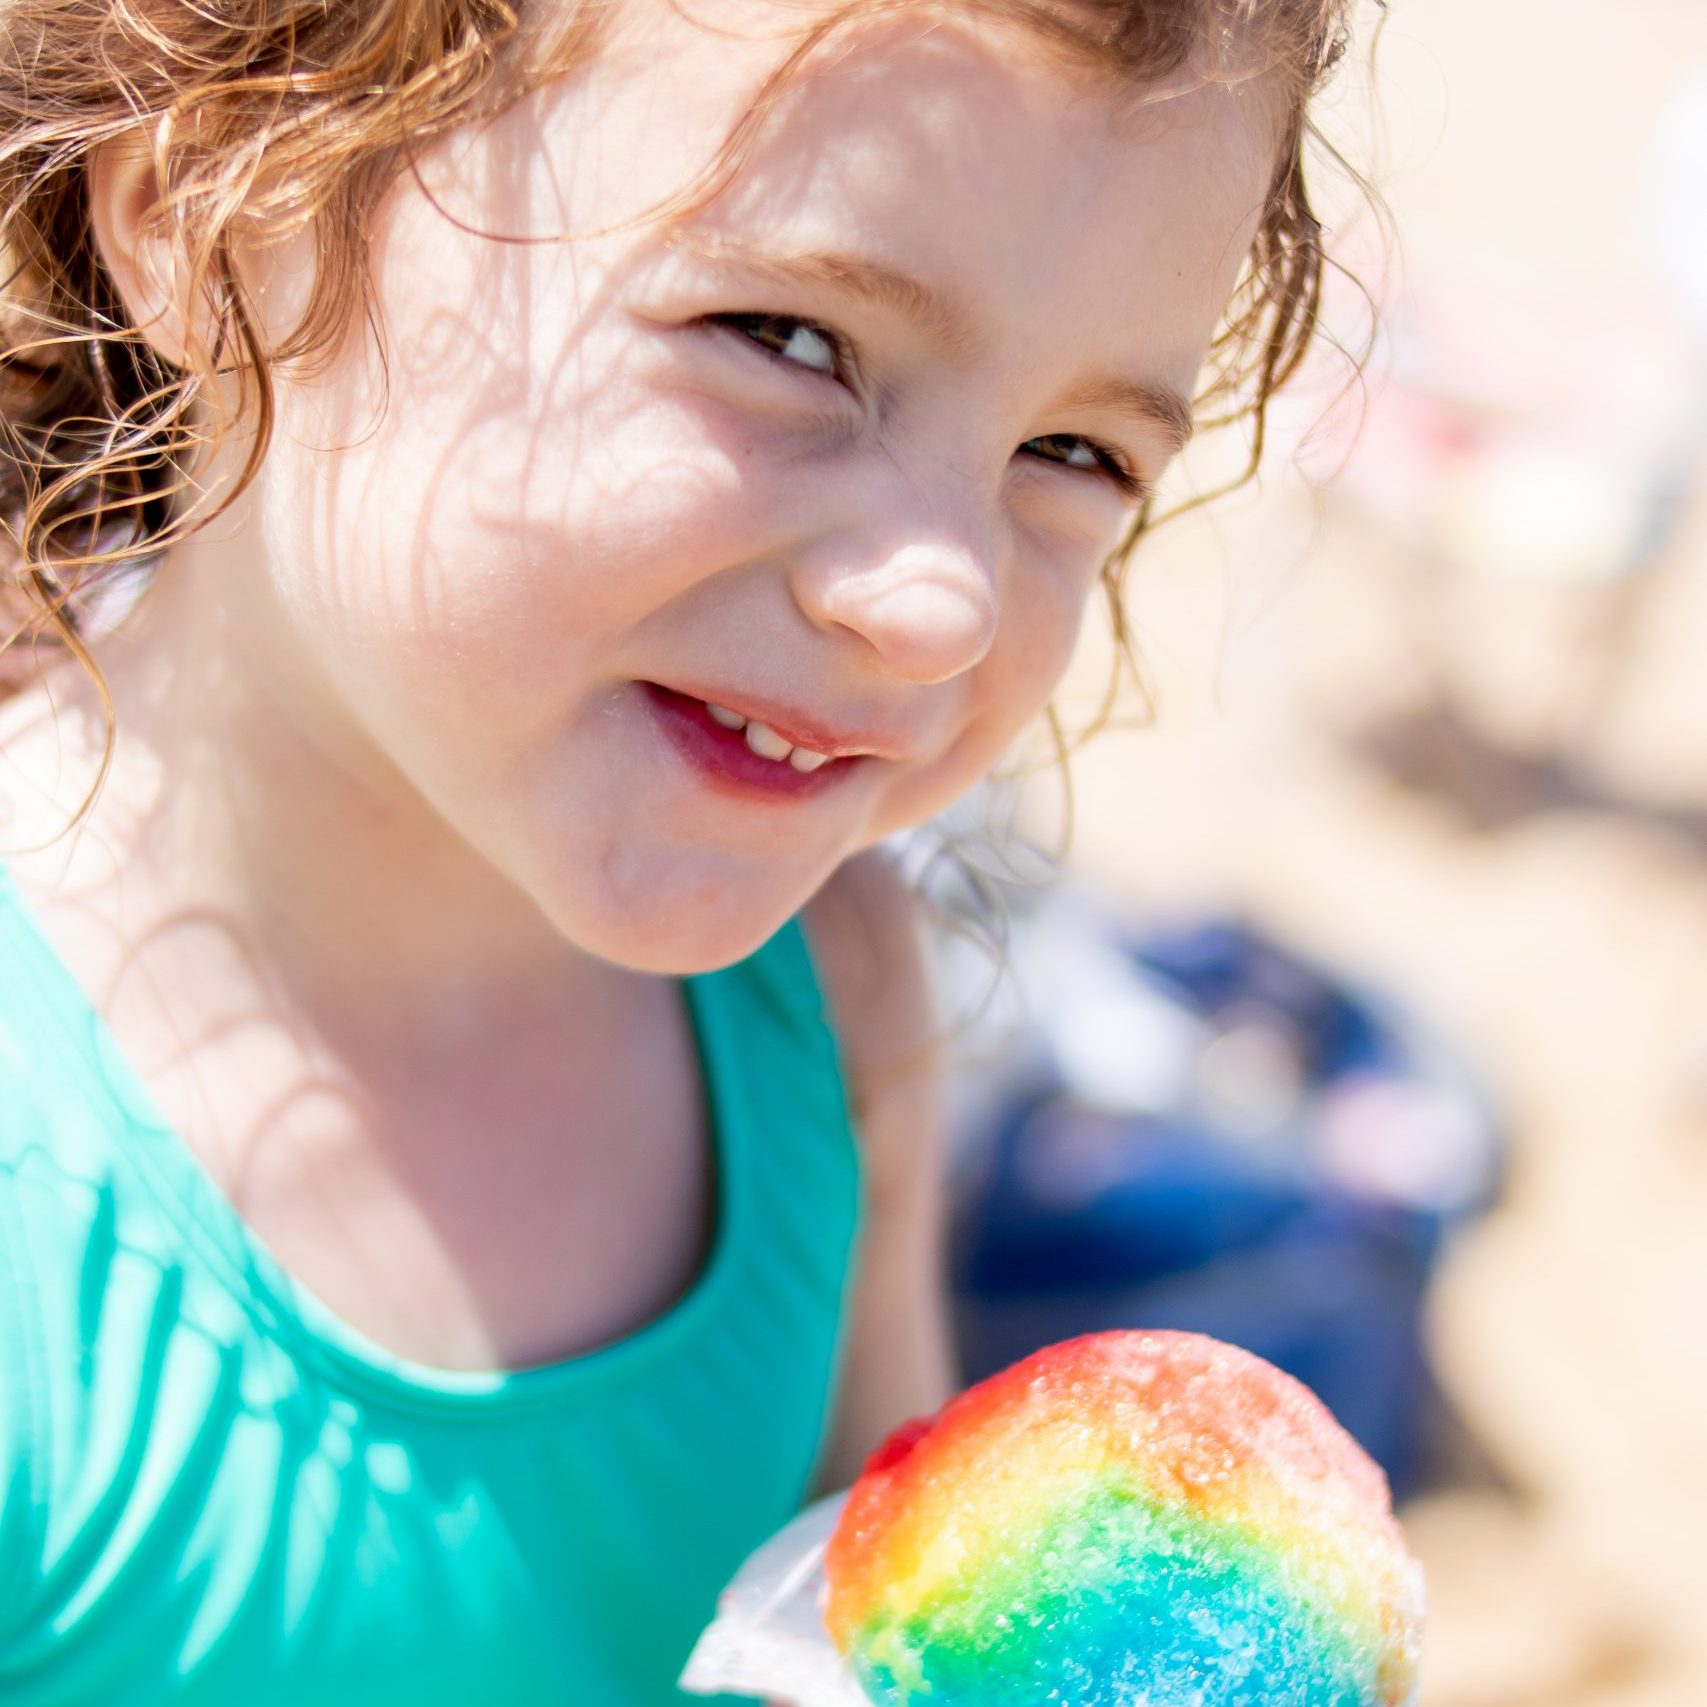 little girl with snow cone Cape Cod August 2020